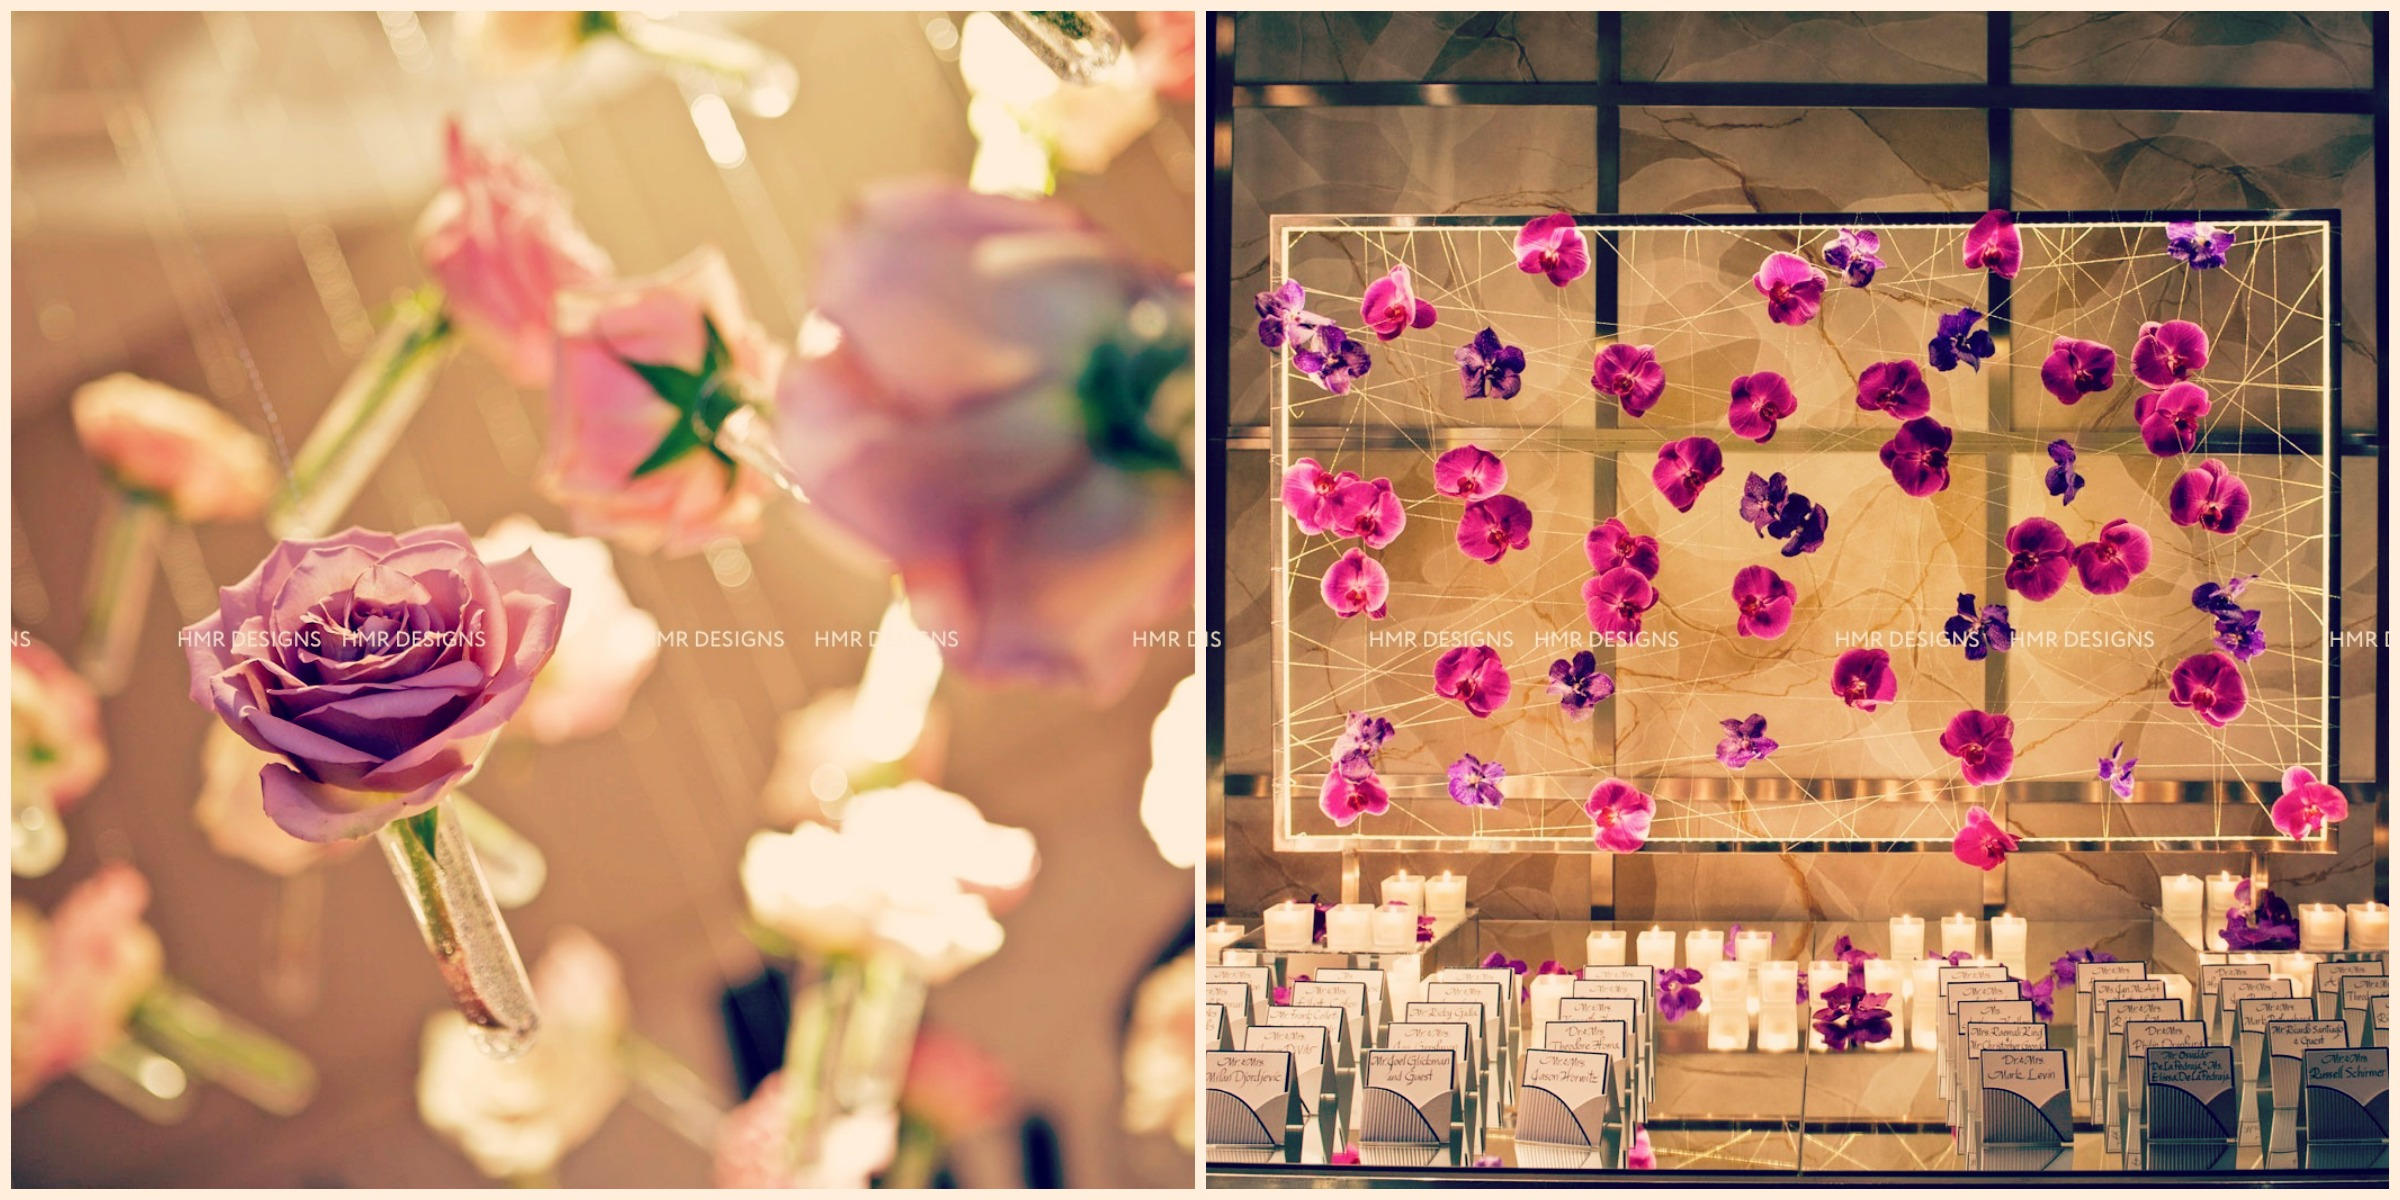 Suspended, strung and spectacularly eye-catching. Photos by Fandl Photography.